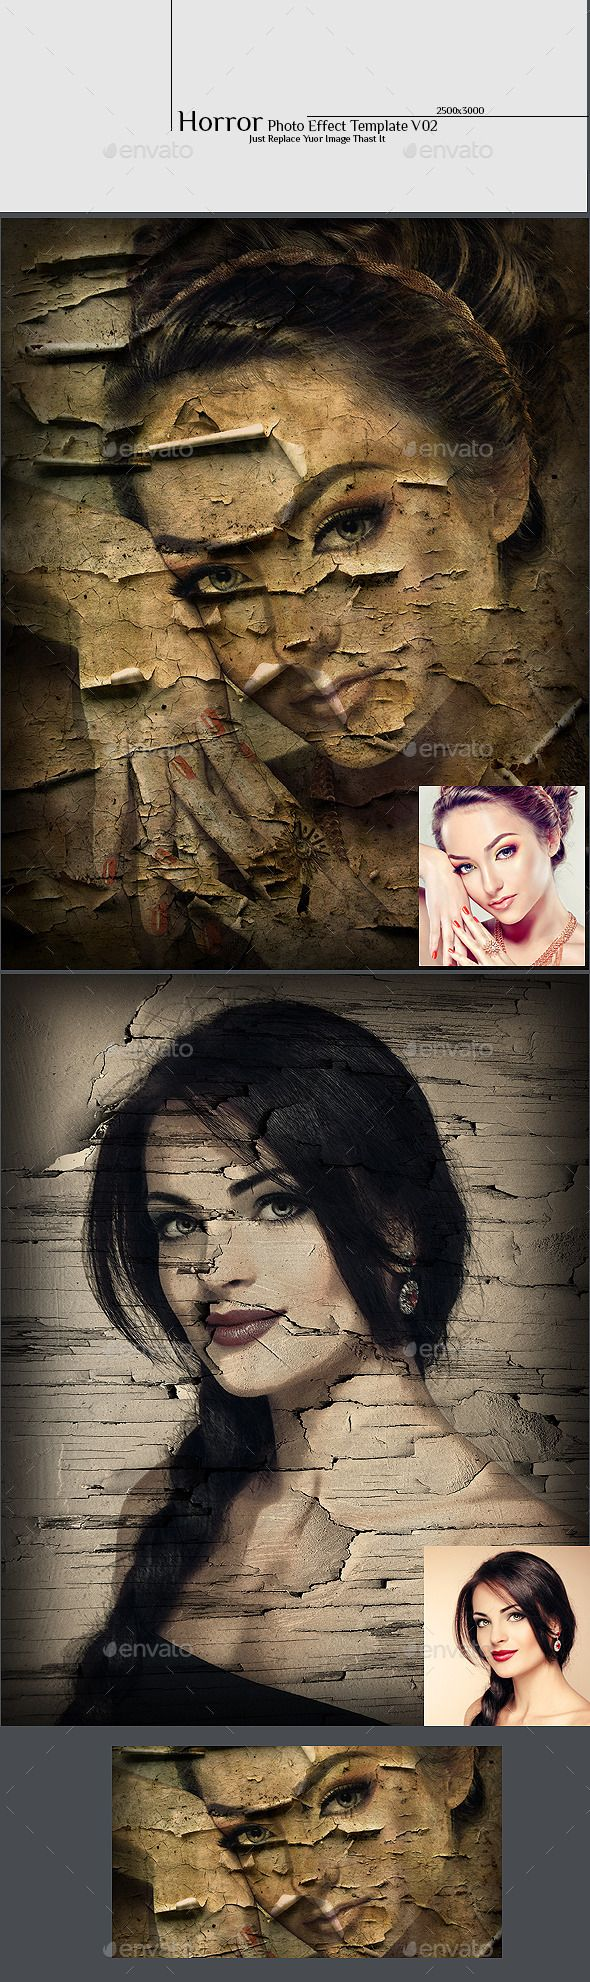 61 best top photoshop editing images on pinterest photo horror photo effect template v02 baditri Gallery